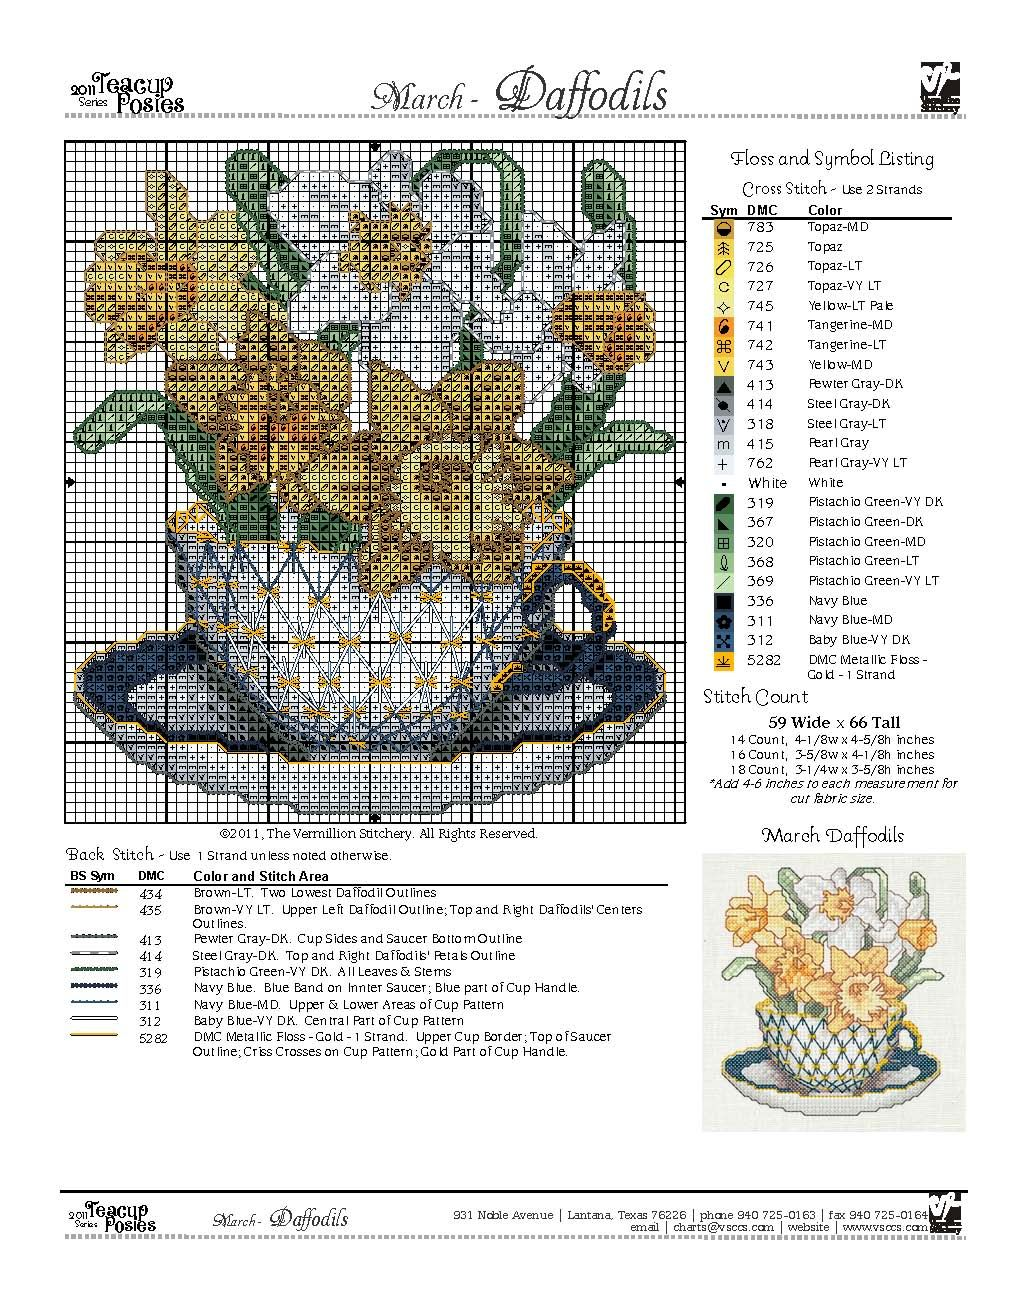 sandylandyaoutlook.es March Color Floral cross stitch